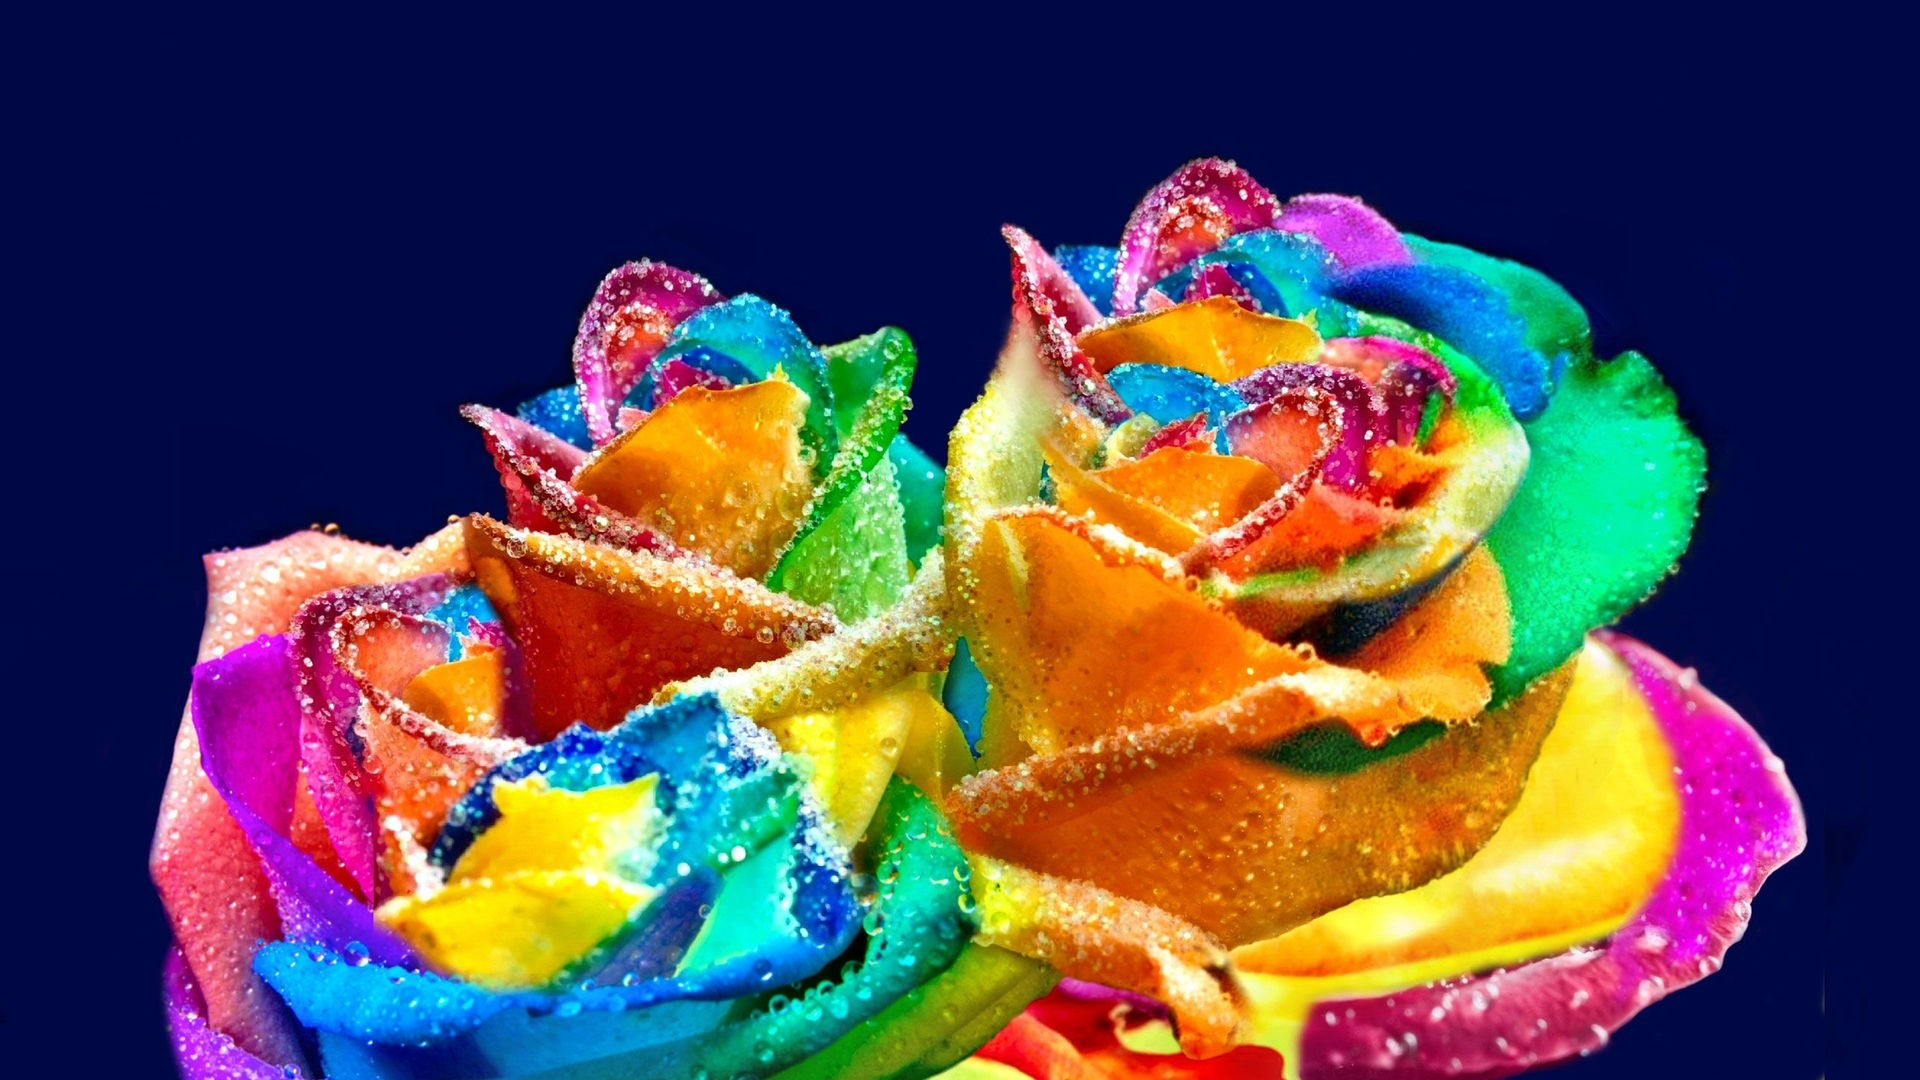 Rainbow Rose Free Wallpaper and Background